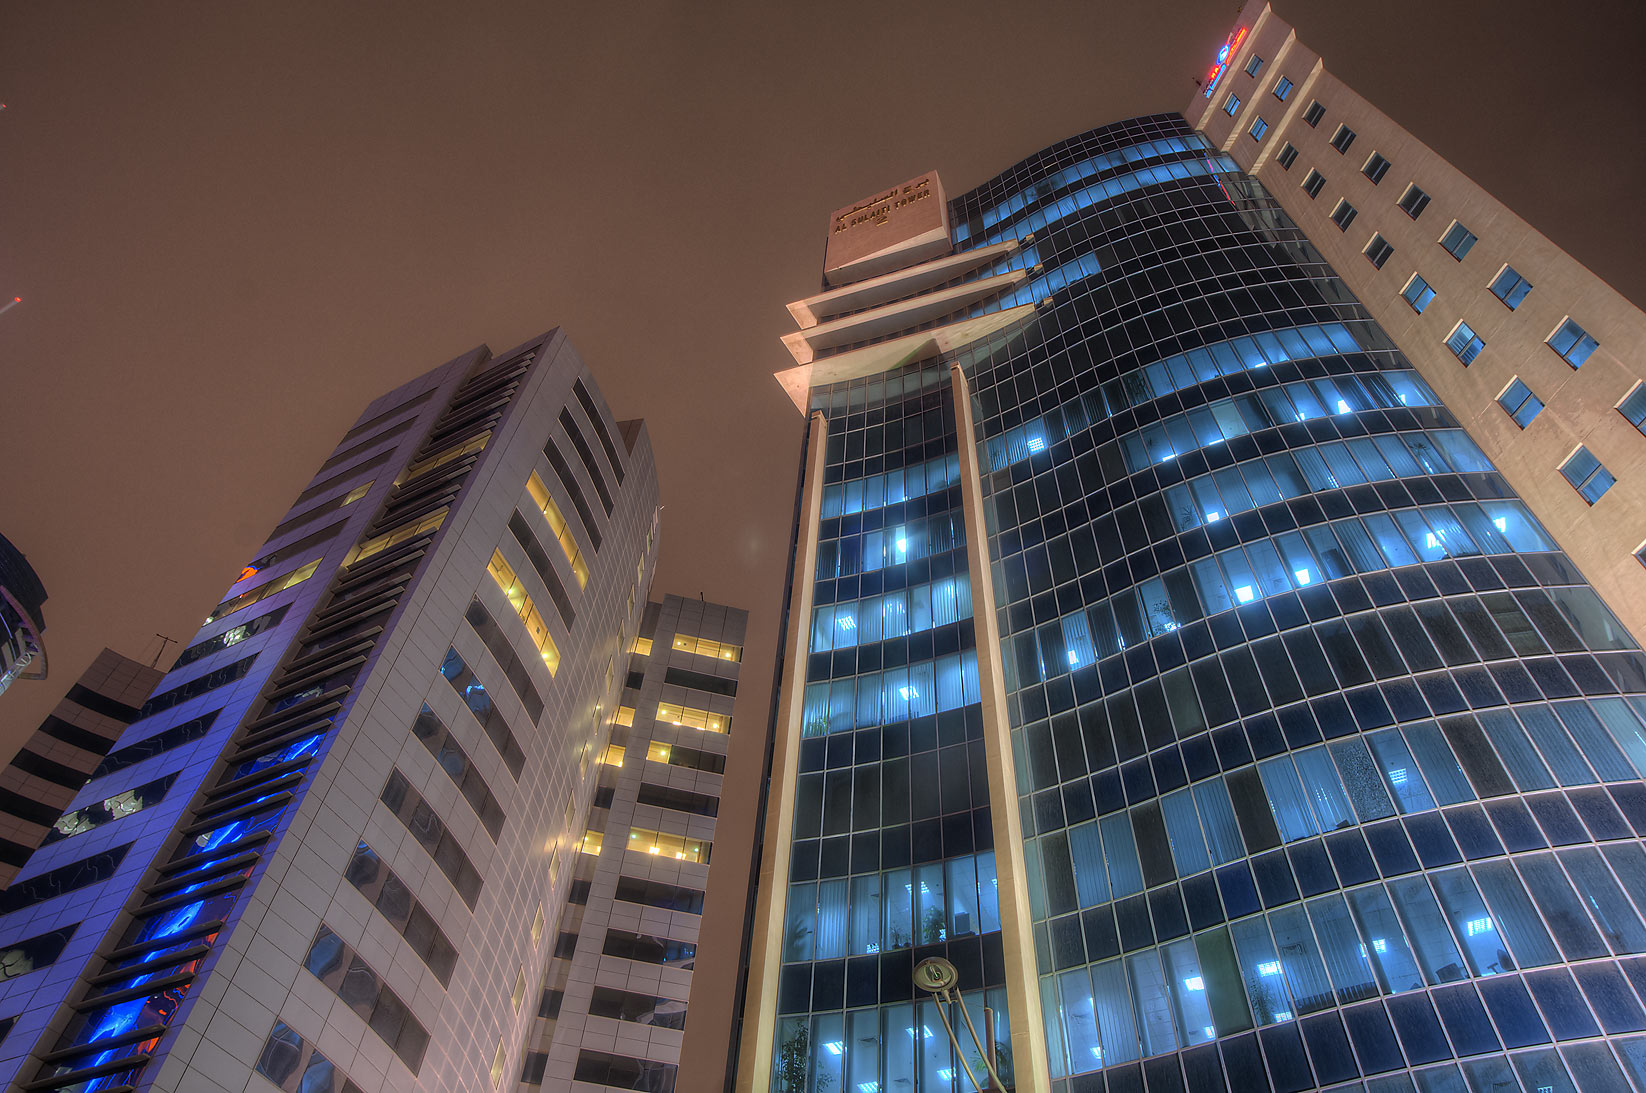 Public Works Authority (Al Faisal Tower East) and...from Sheraton Roundabout. Doha, Qatar